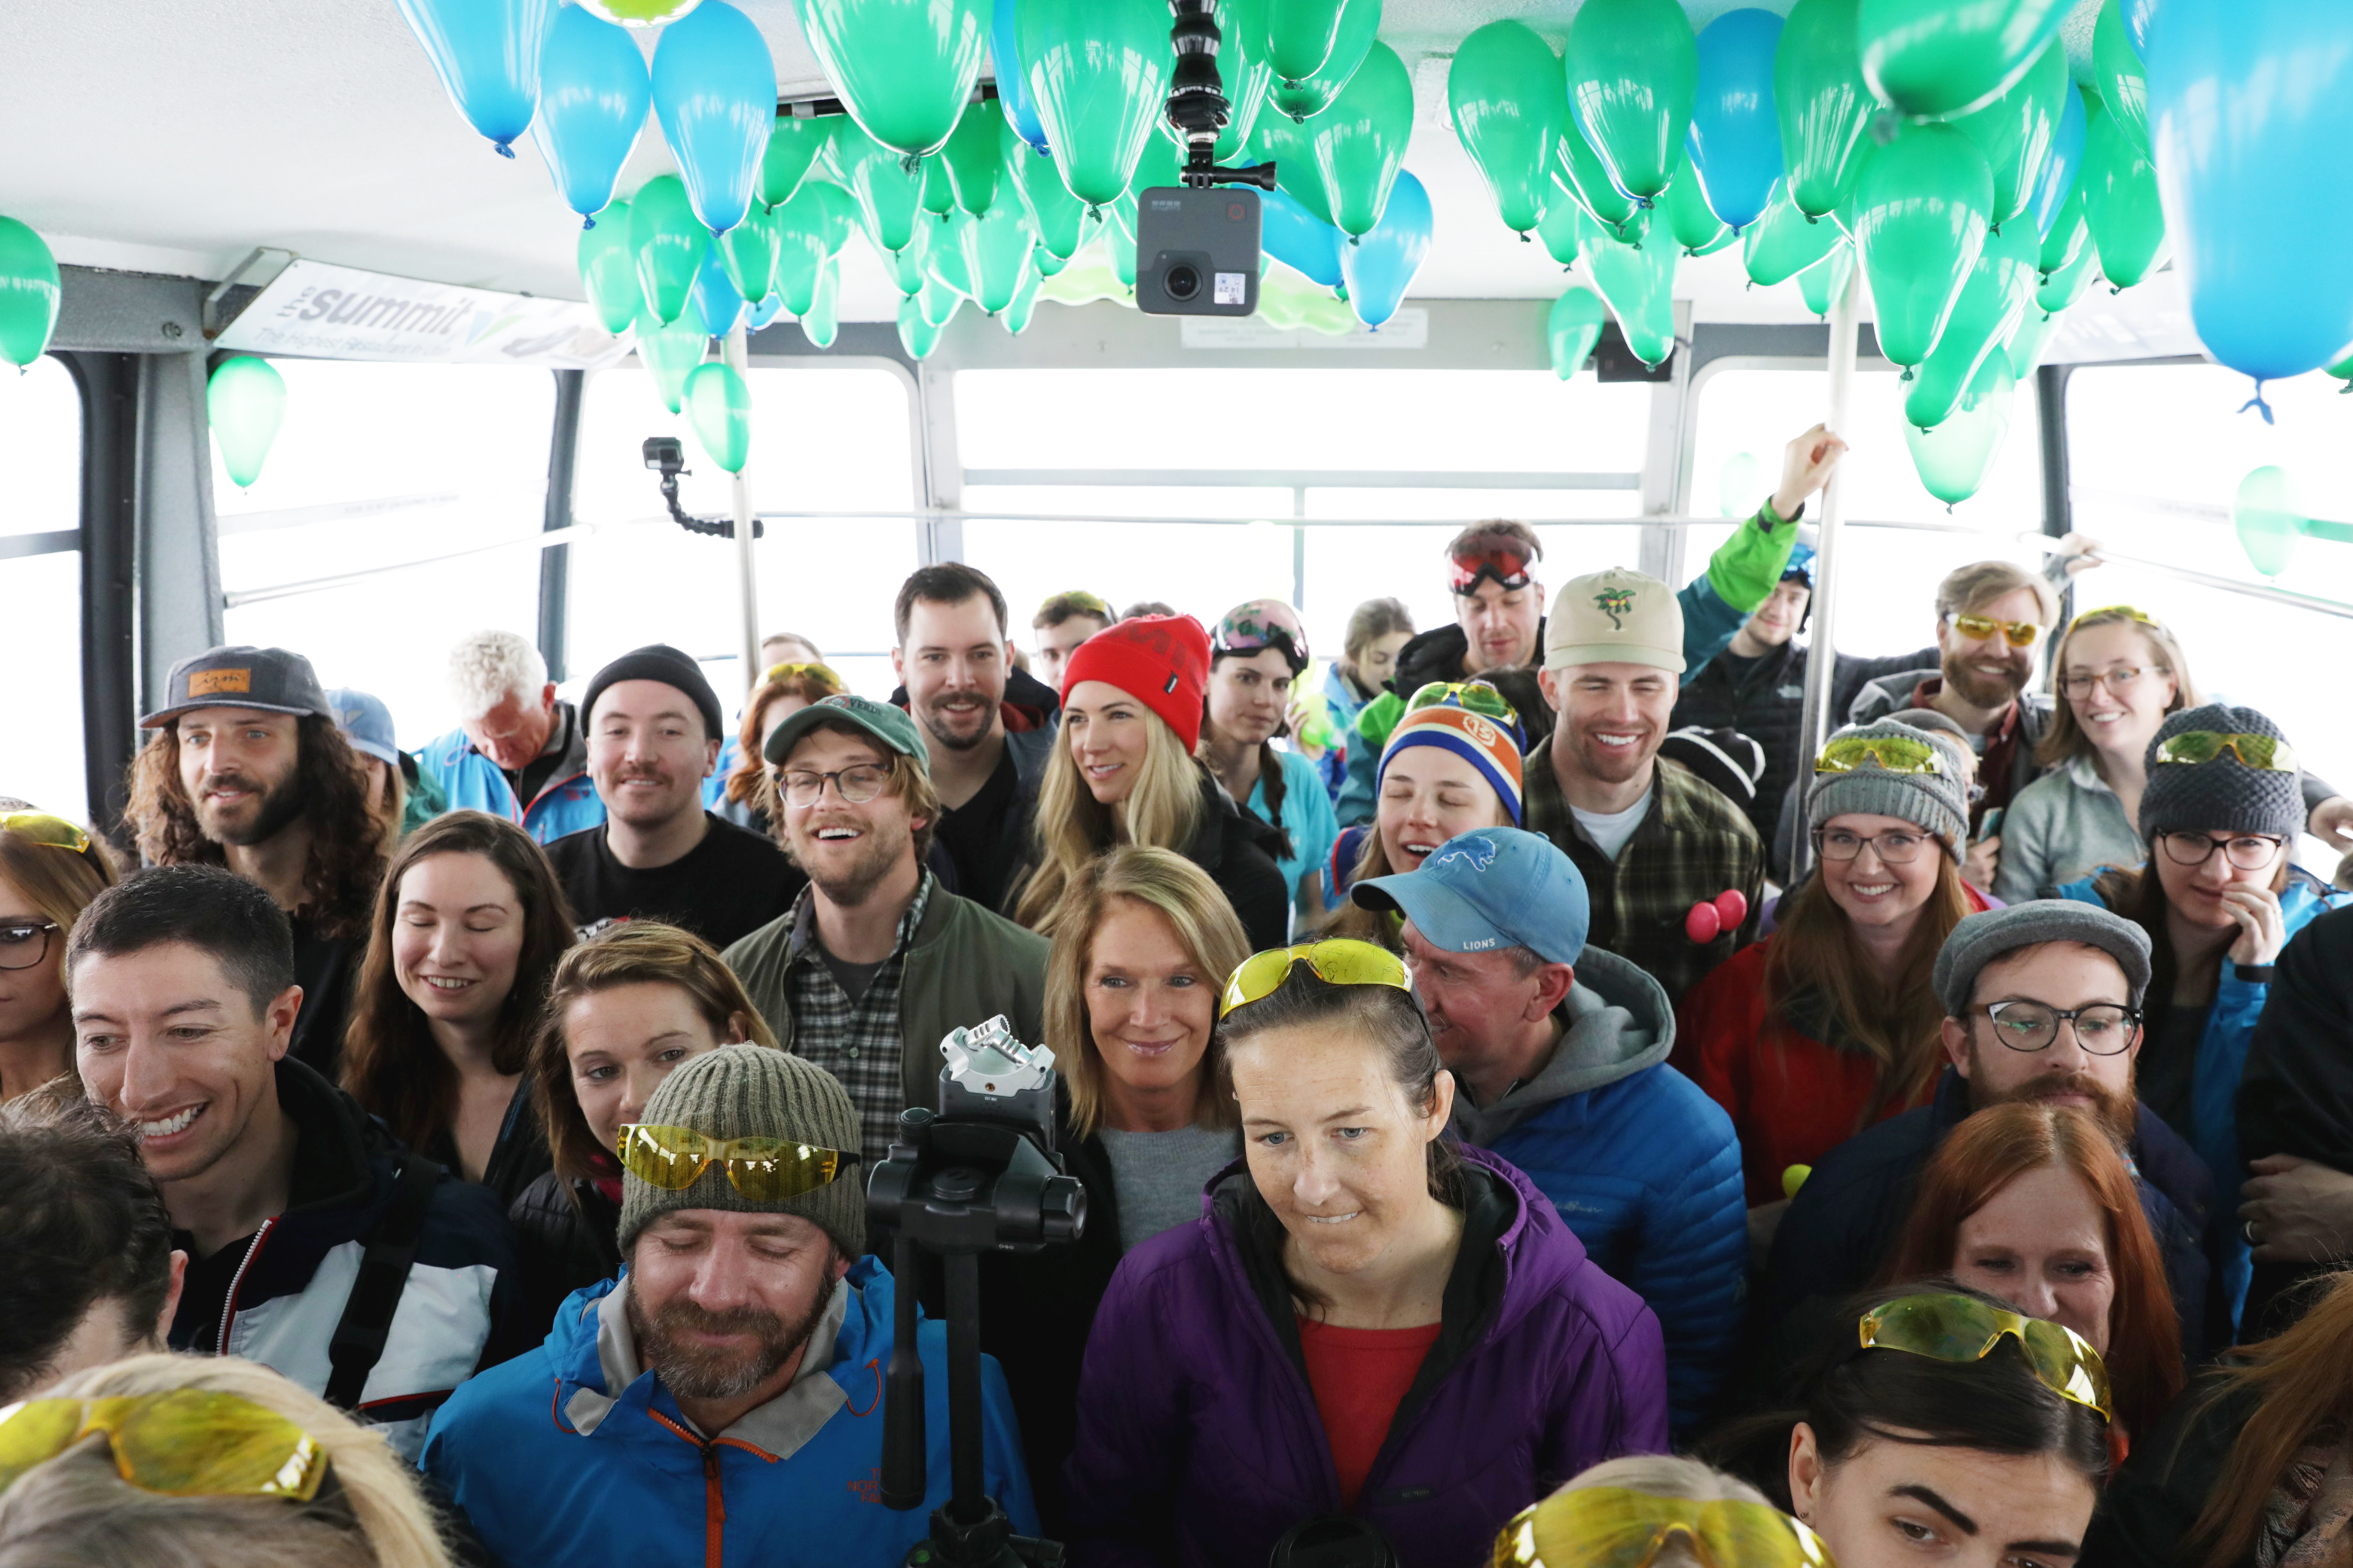 Happy faces and close quarters in the Snowbird tram during this Frontside Sessions event. Photo: Lmsorenson.net